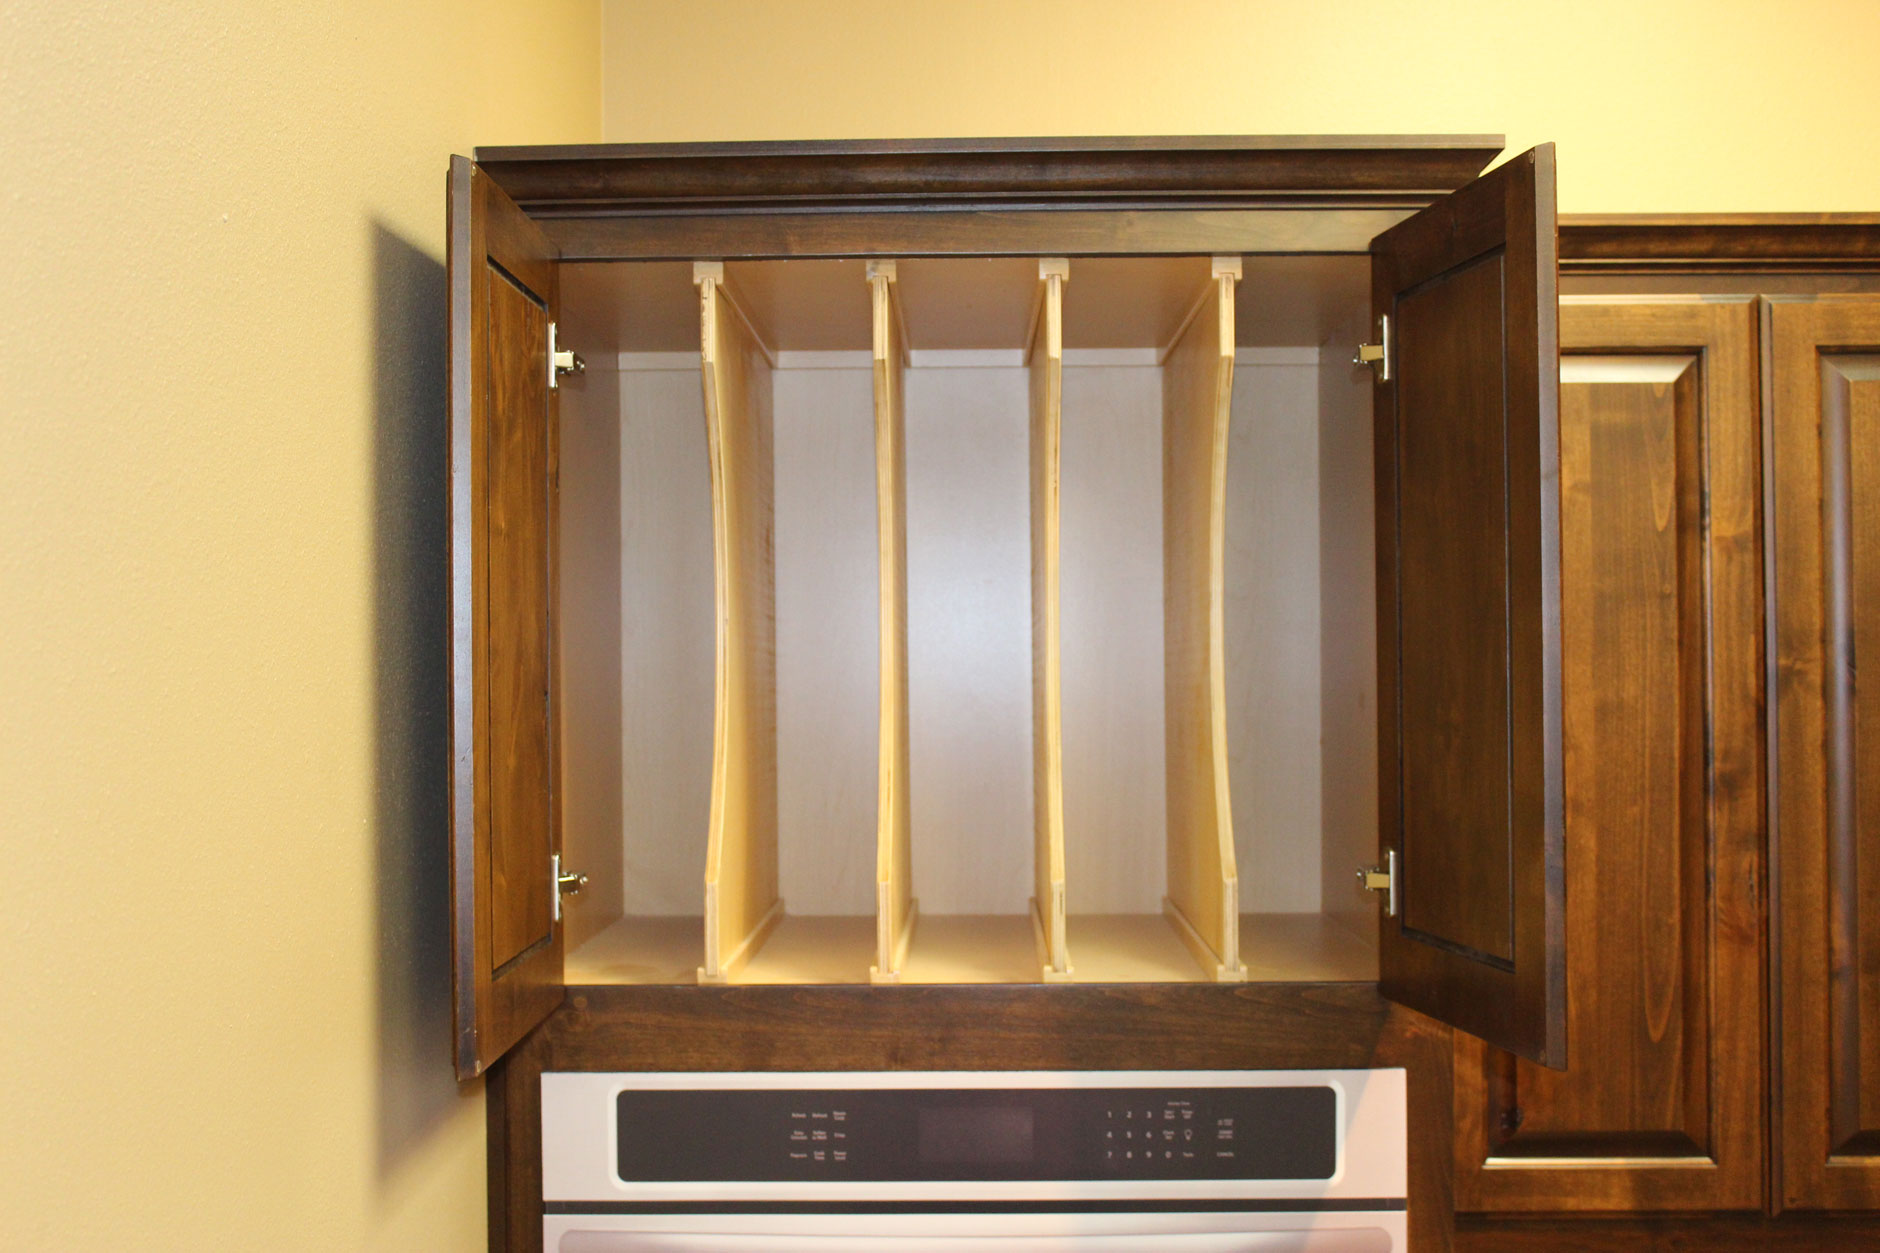 Cookie sheet and platter dividers for kitchen cabinets